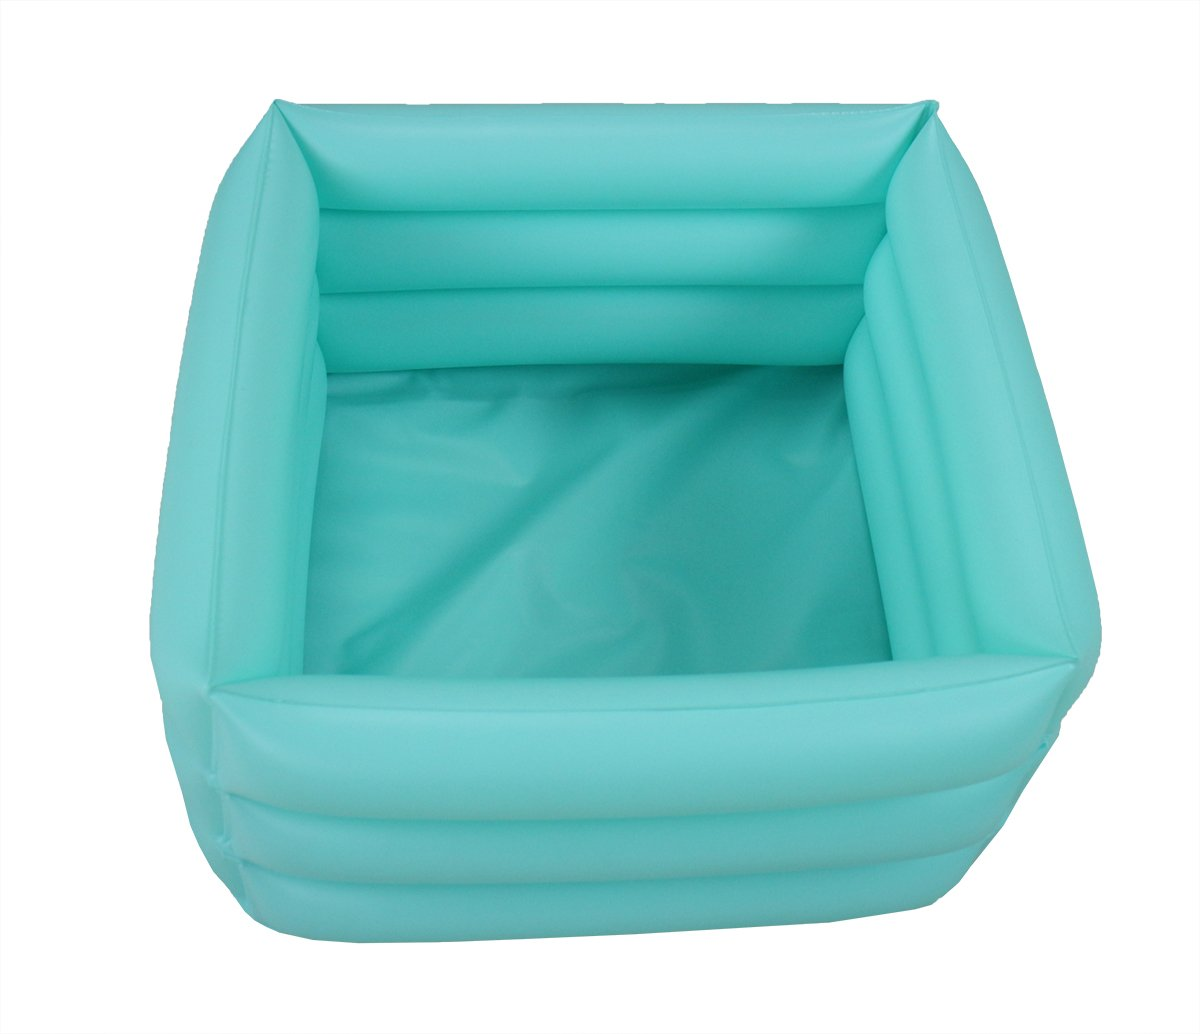 ObboMed HB-1700 Folding Inflatable Portable Travel Spa Foot Care Bath Basin –Inflated size: 42 x 42 x 18cm /16.5(L) x 16.5(W) x 7.0(H) inches – 16.2L / 4.2 Gallons Capacity - Relax Soak Bucket ObboMed Group